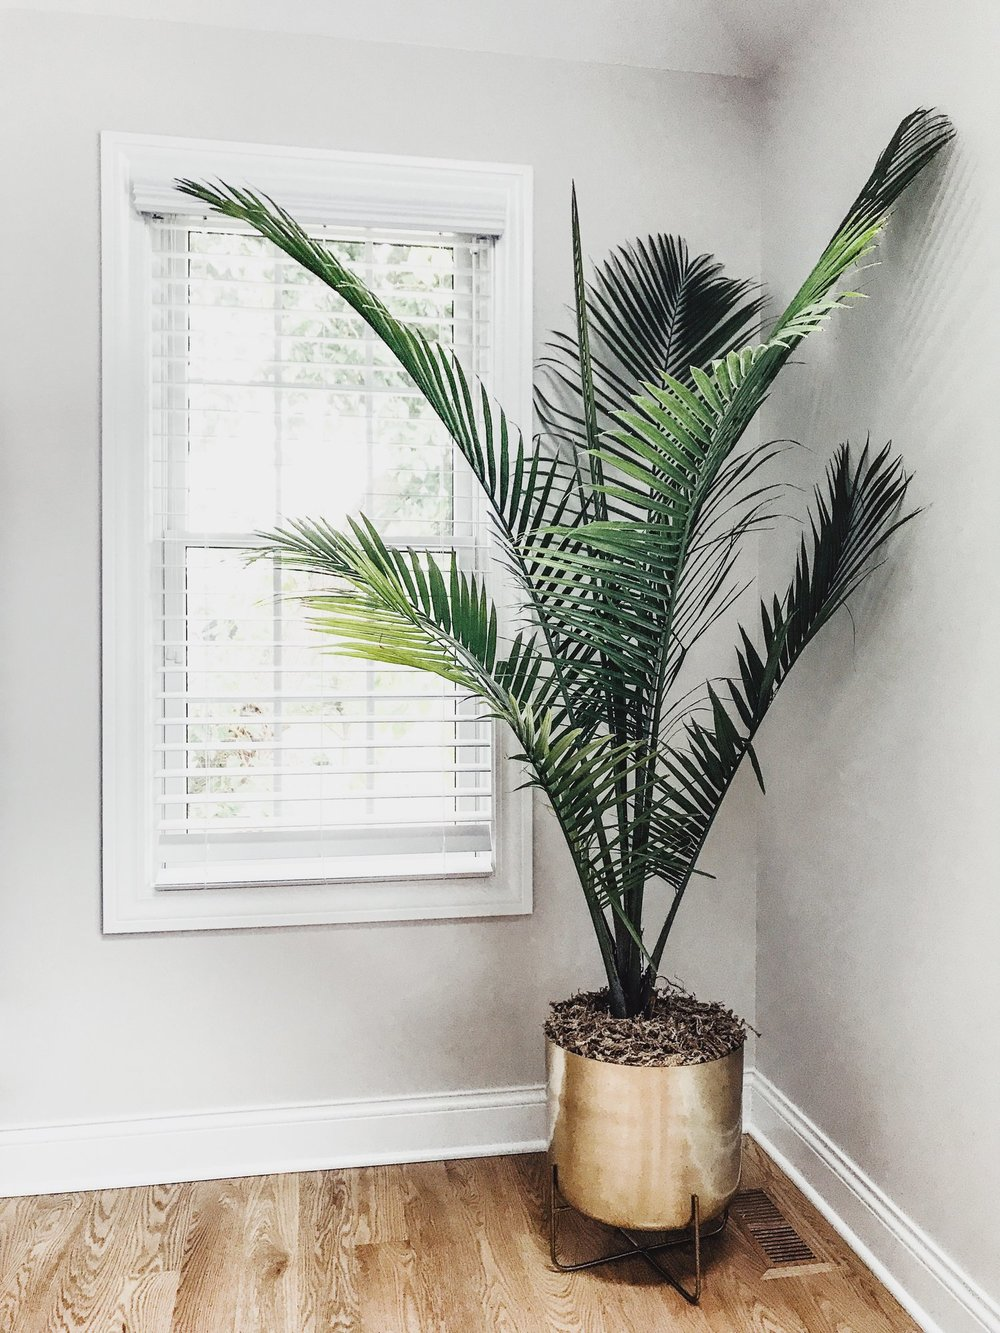 Best Indoor Planters And Herb Garden Ideas. Decorative Indoor Statement Planters And Gardens For Your Home. Gold floor planter for palm tree. West Elm metallic floor planter. #indoor #planters # palm #tree